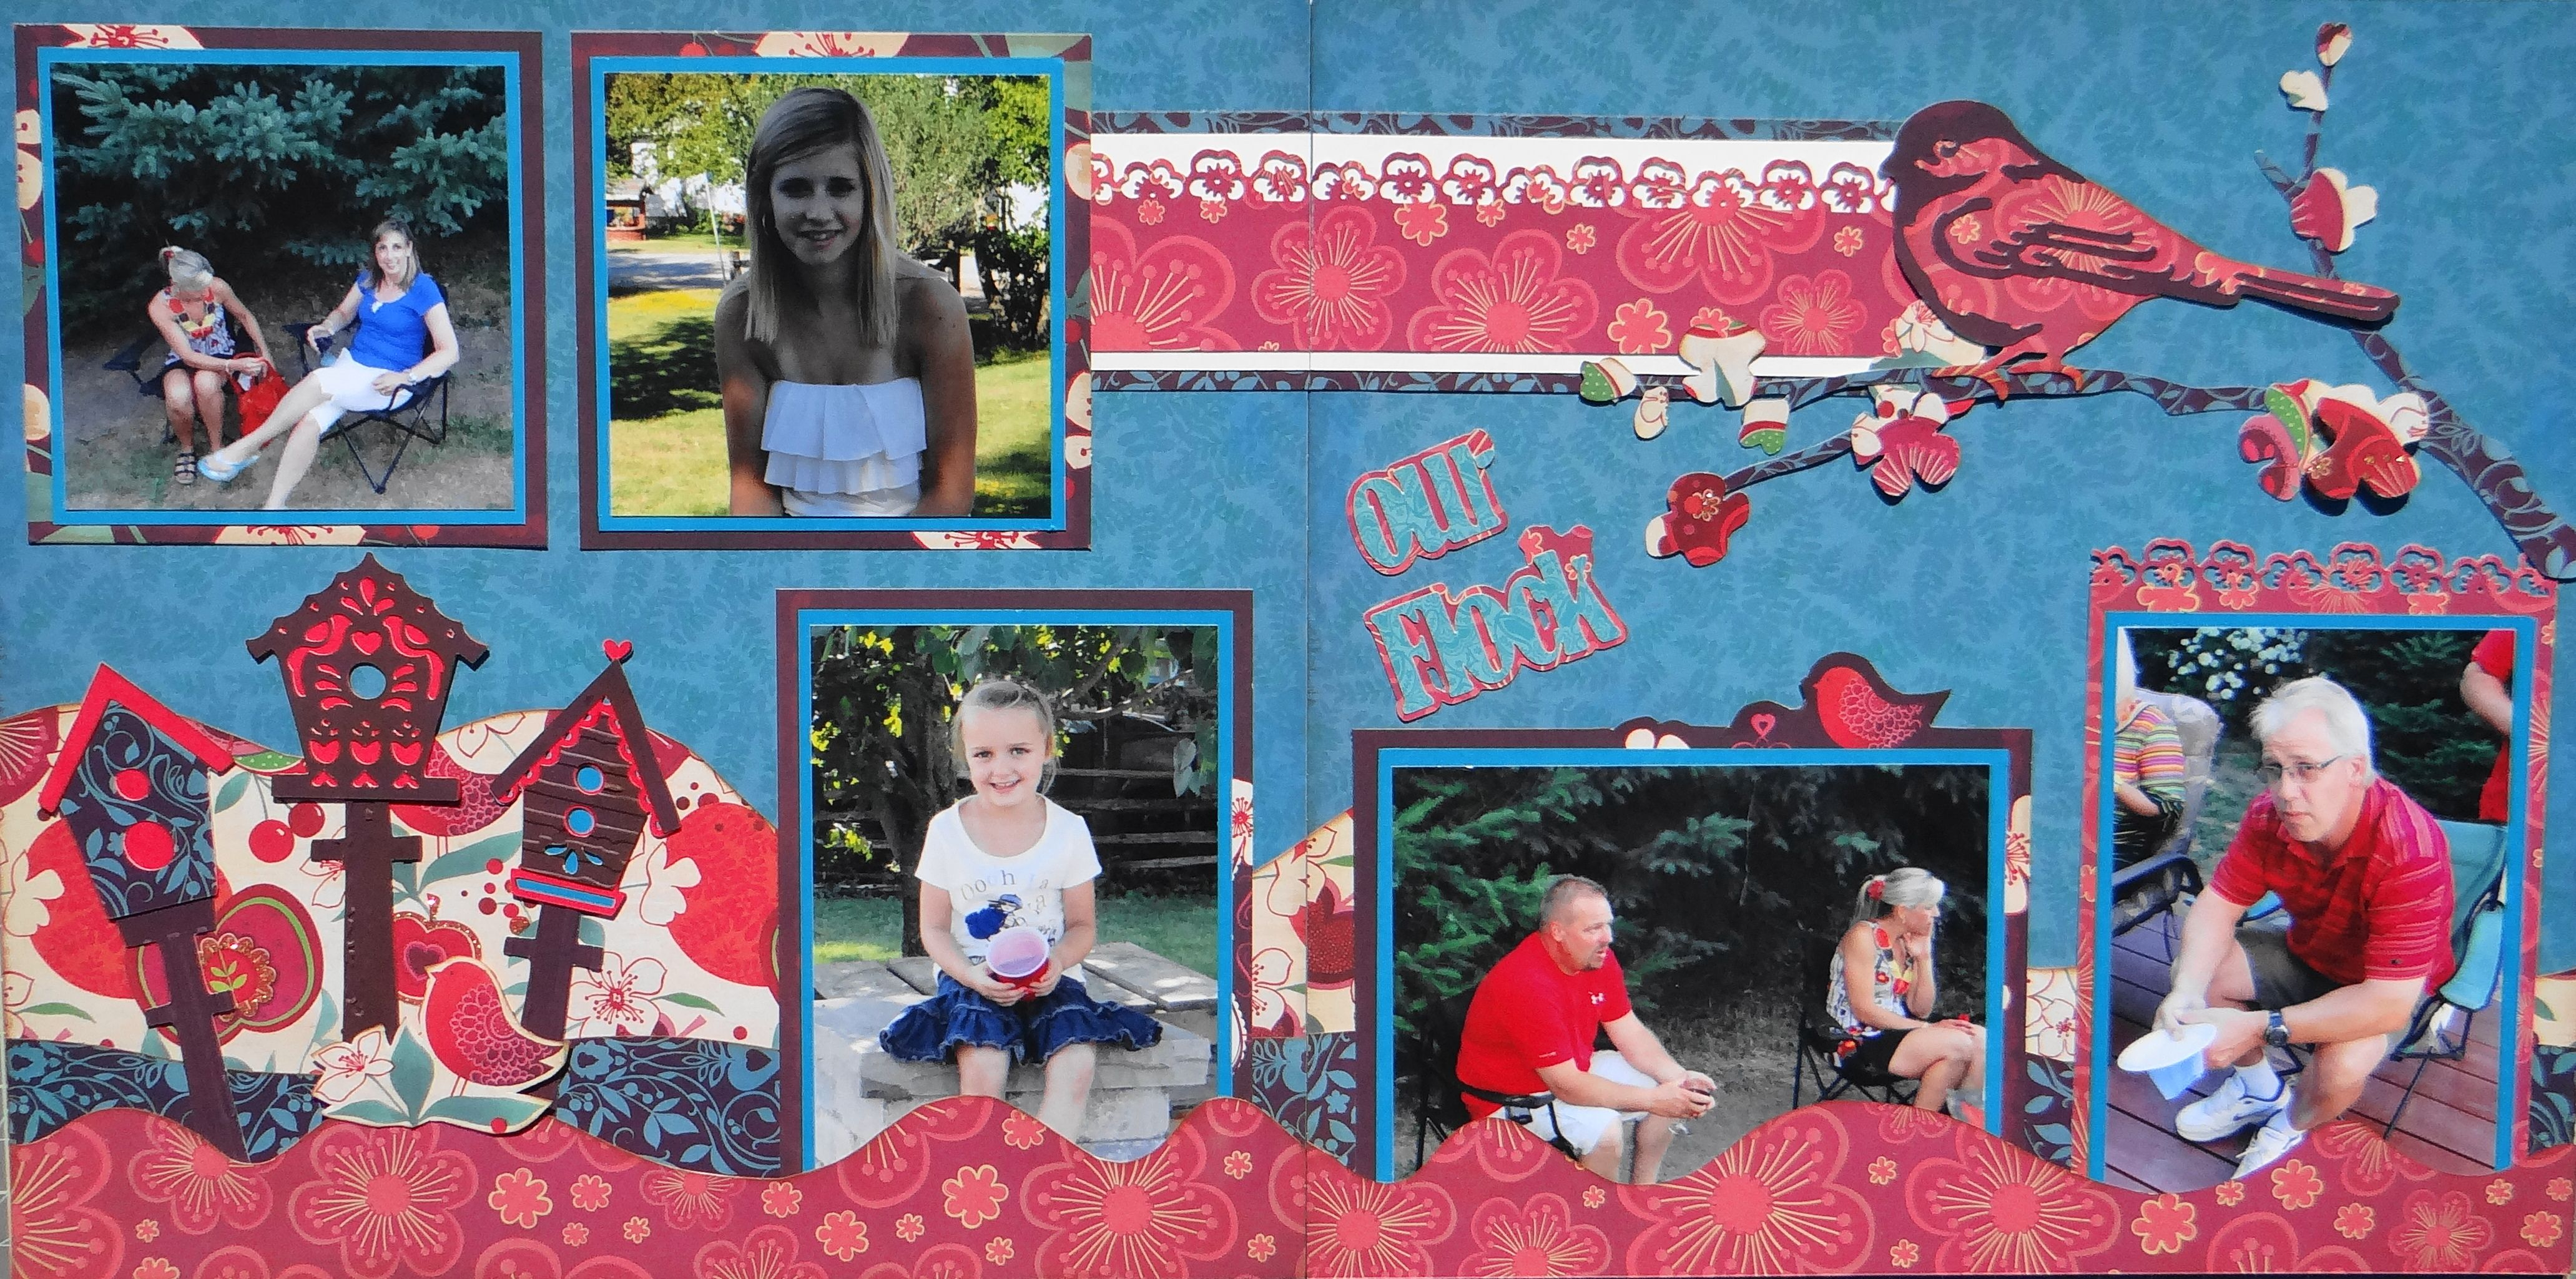 Family scrapbook ideas on pinterest - Scrapbook Page Our Flock 2 Page Family Layout After A Backyard Get Together